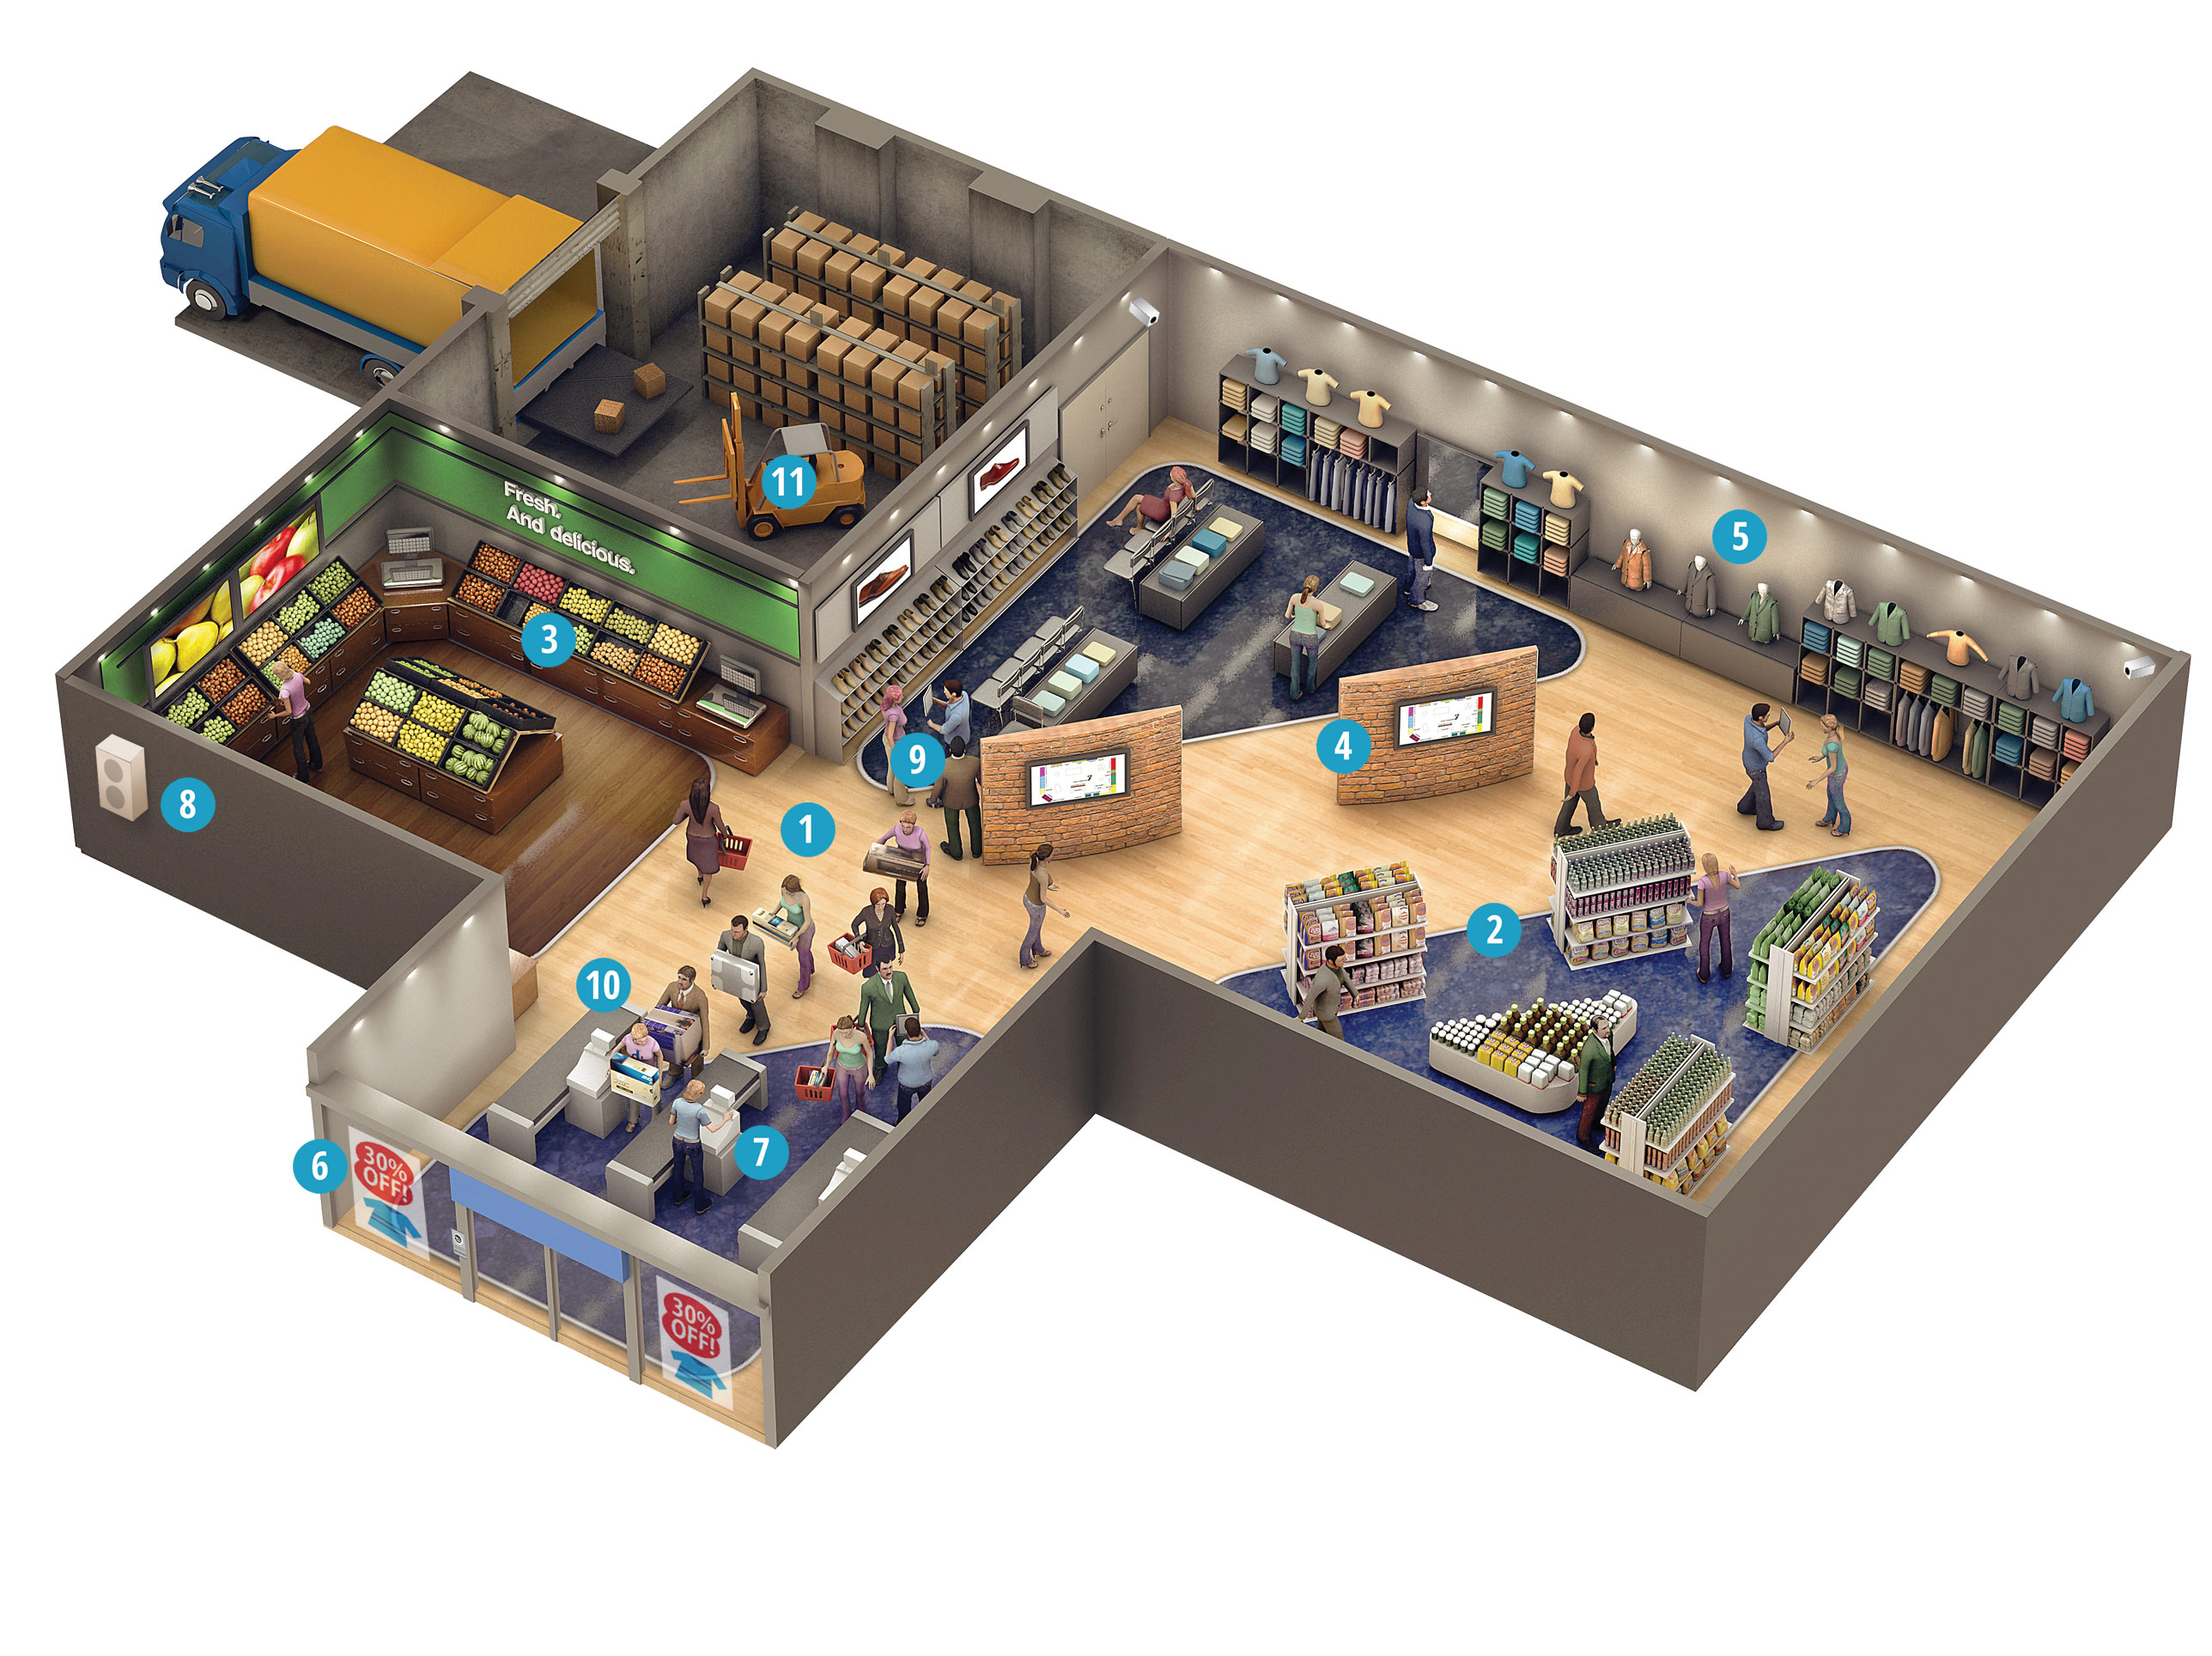 RETAIL BUSINESS SOLUTIONS FOR THE DIGITAL FUTURE OF PHYSICAL STORE